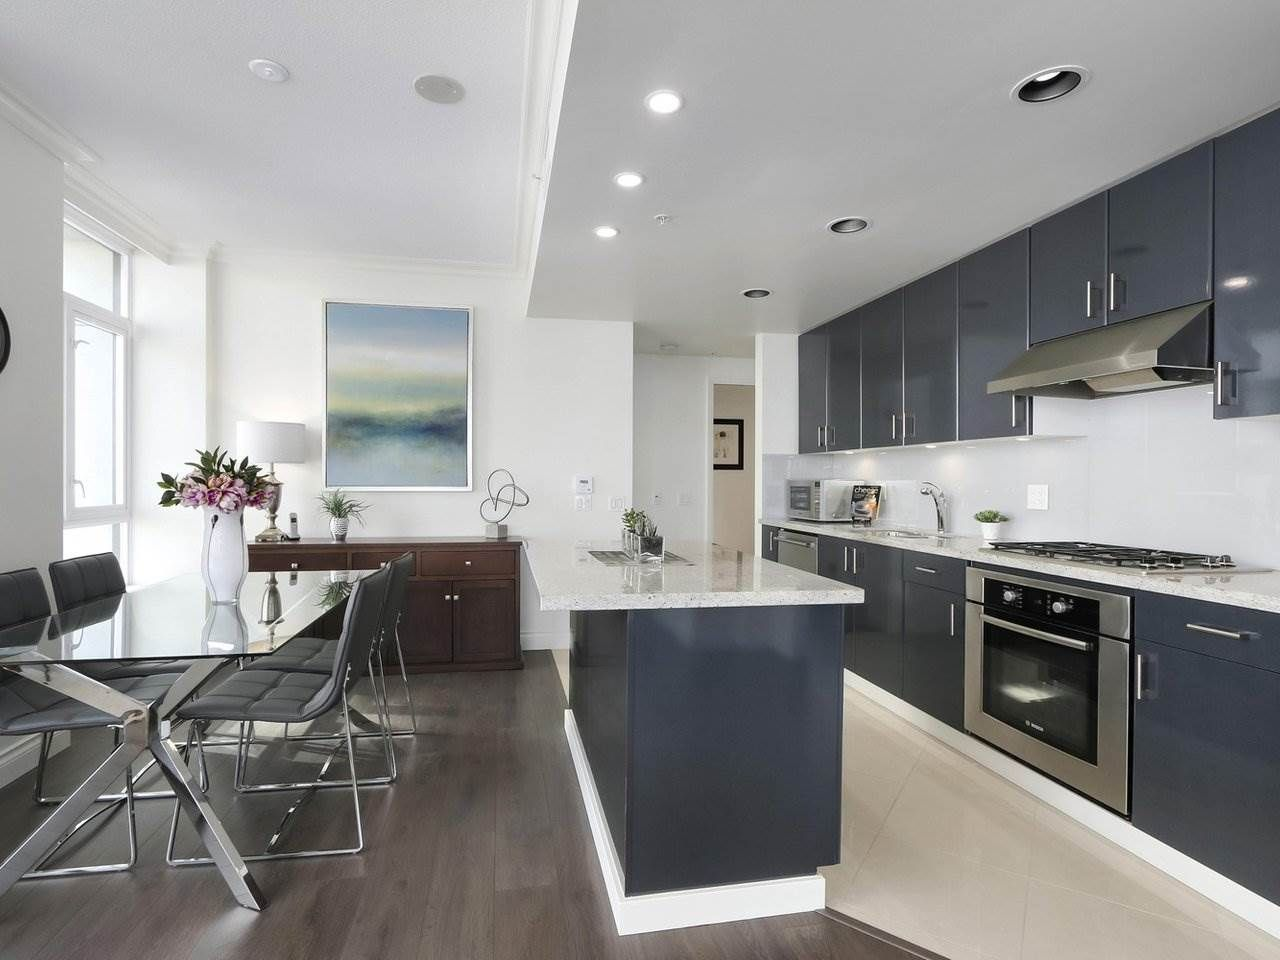 """Photo 8: Photos: 608 172 VICTORY SHIP Way in North Vancouver: Lower Lonsdale Condo for sale in """"Atrium at the Pier"""" : MLS®# R2454404"""